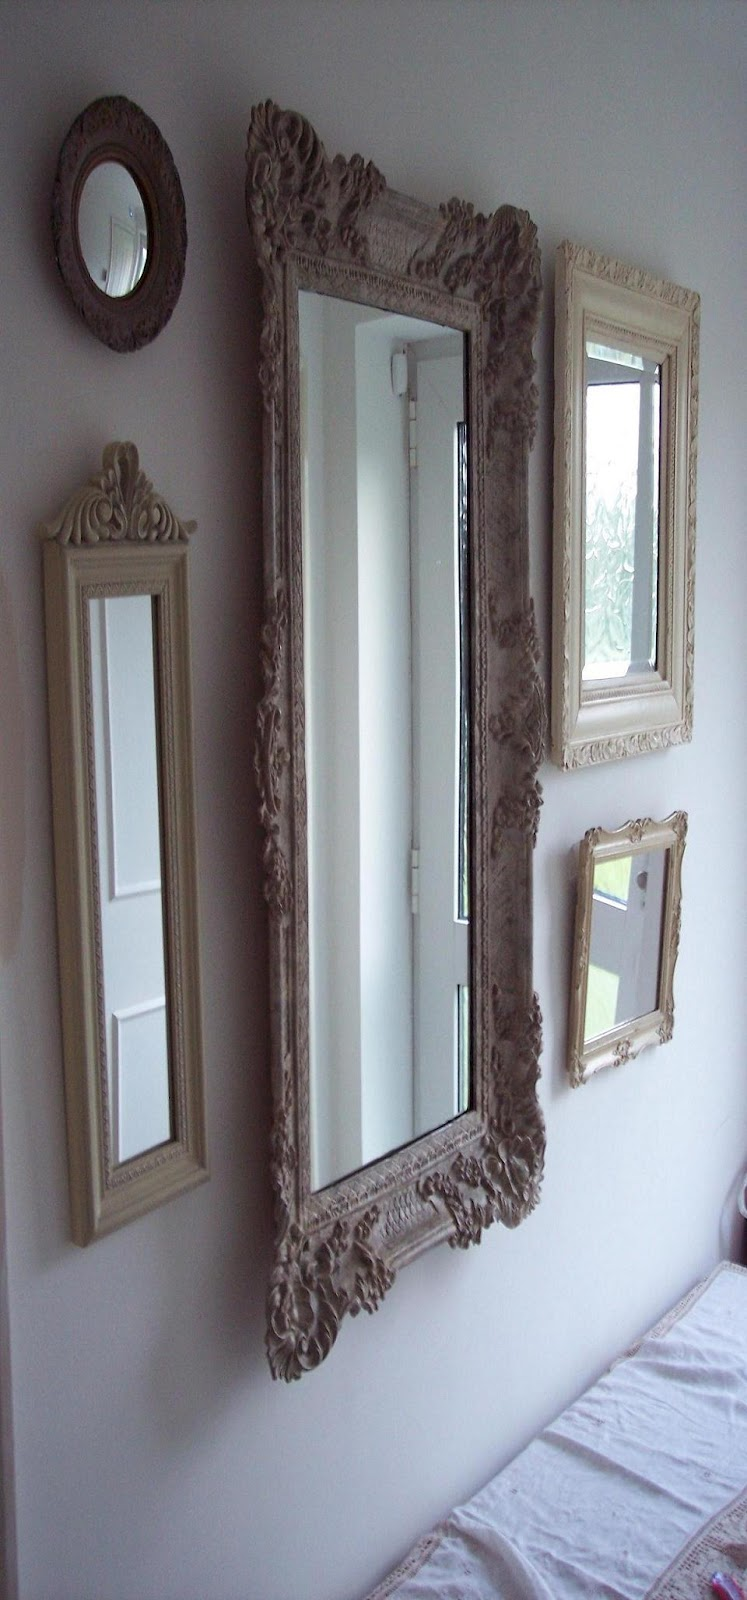 Paint and Style: Painted mirror frames